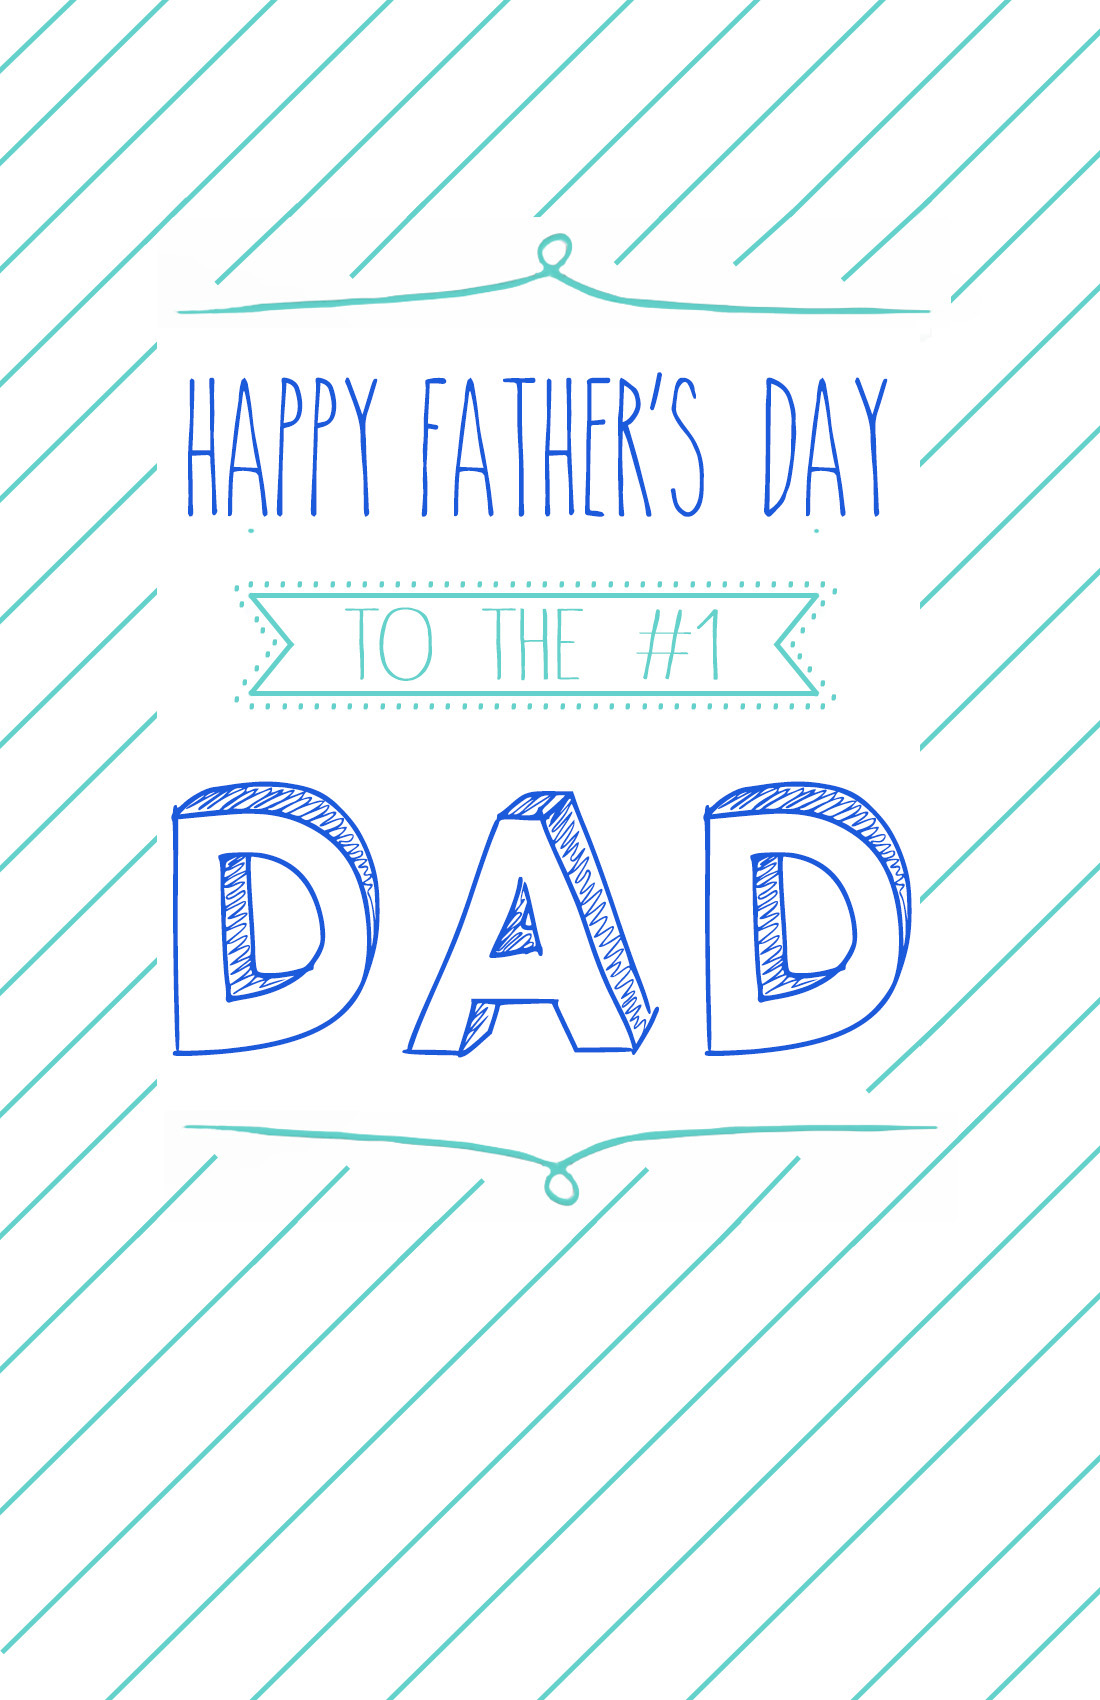 It's just a picture of Terrible Fathers Day Printables